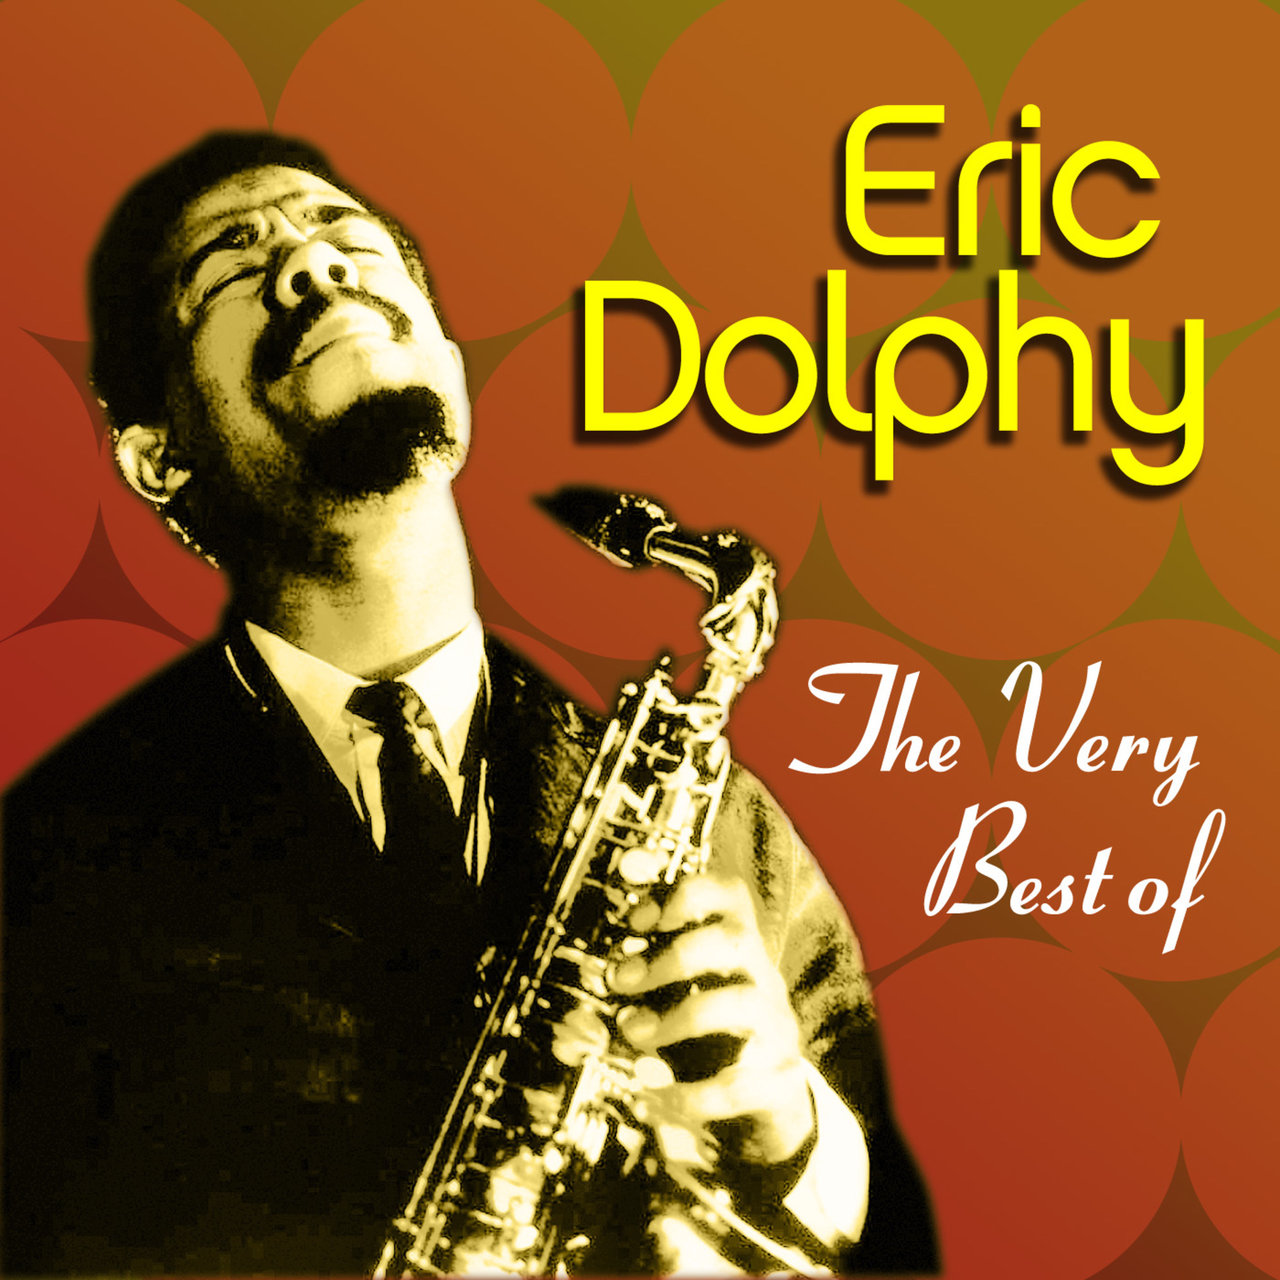 The Very Best of Eric Dolphy